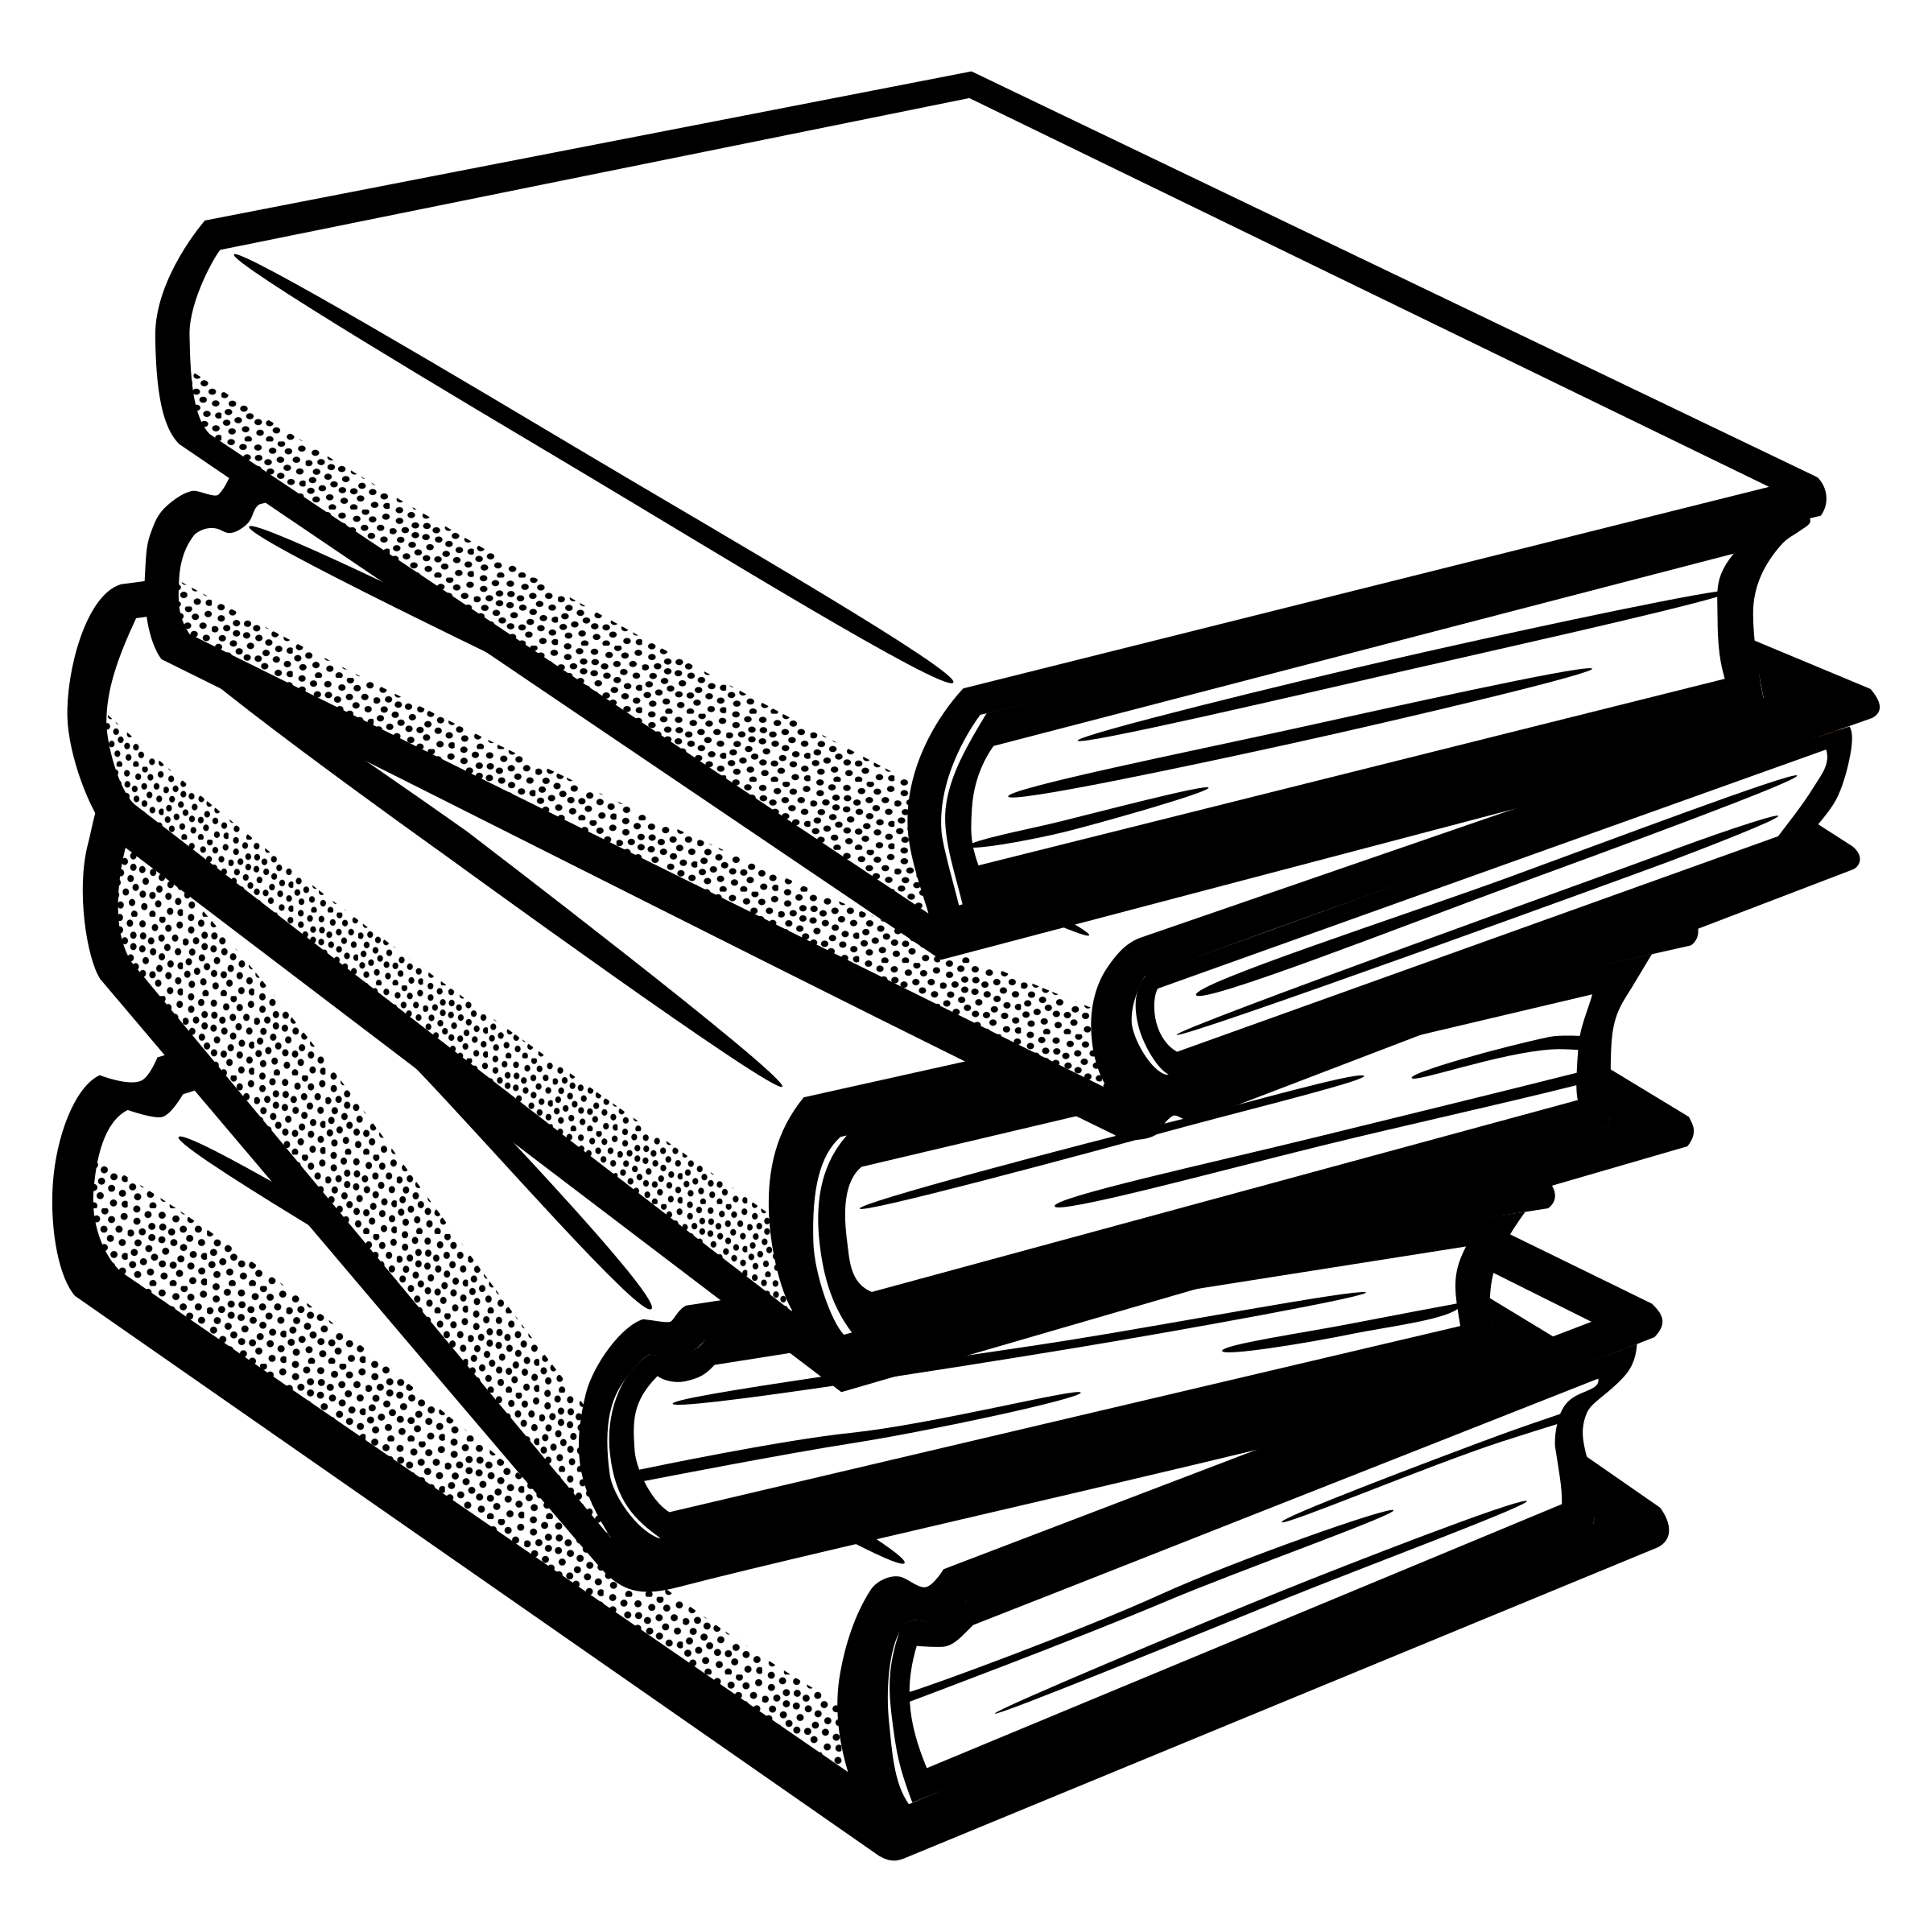 Book clipart free black and white png freeuse library books - lineart by @frankes, line art books, on @openclipart | White ... png freeuse library